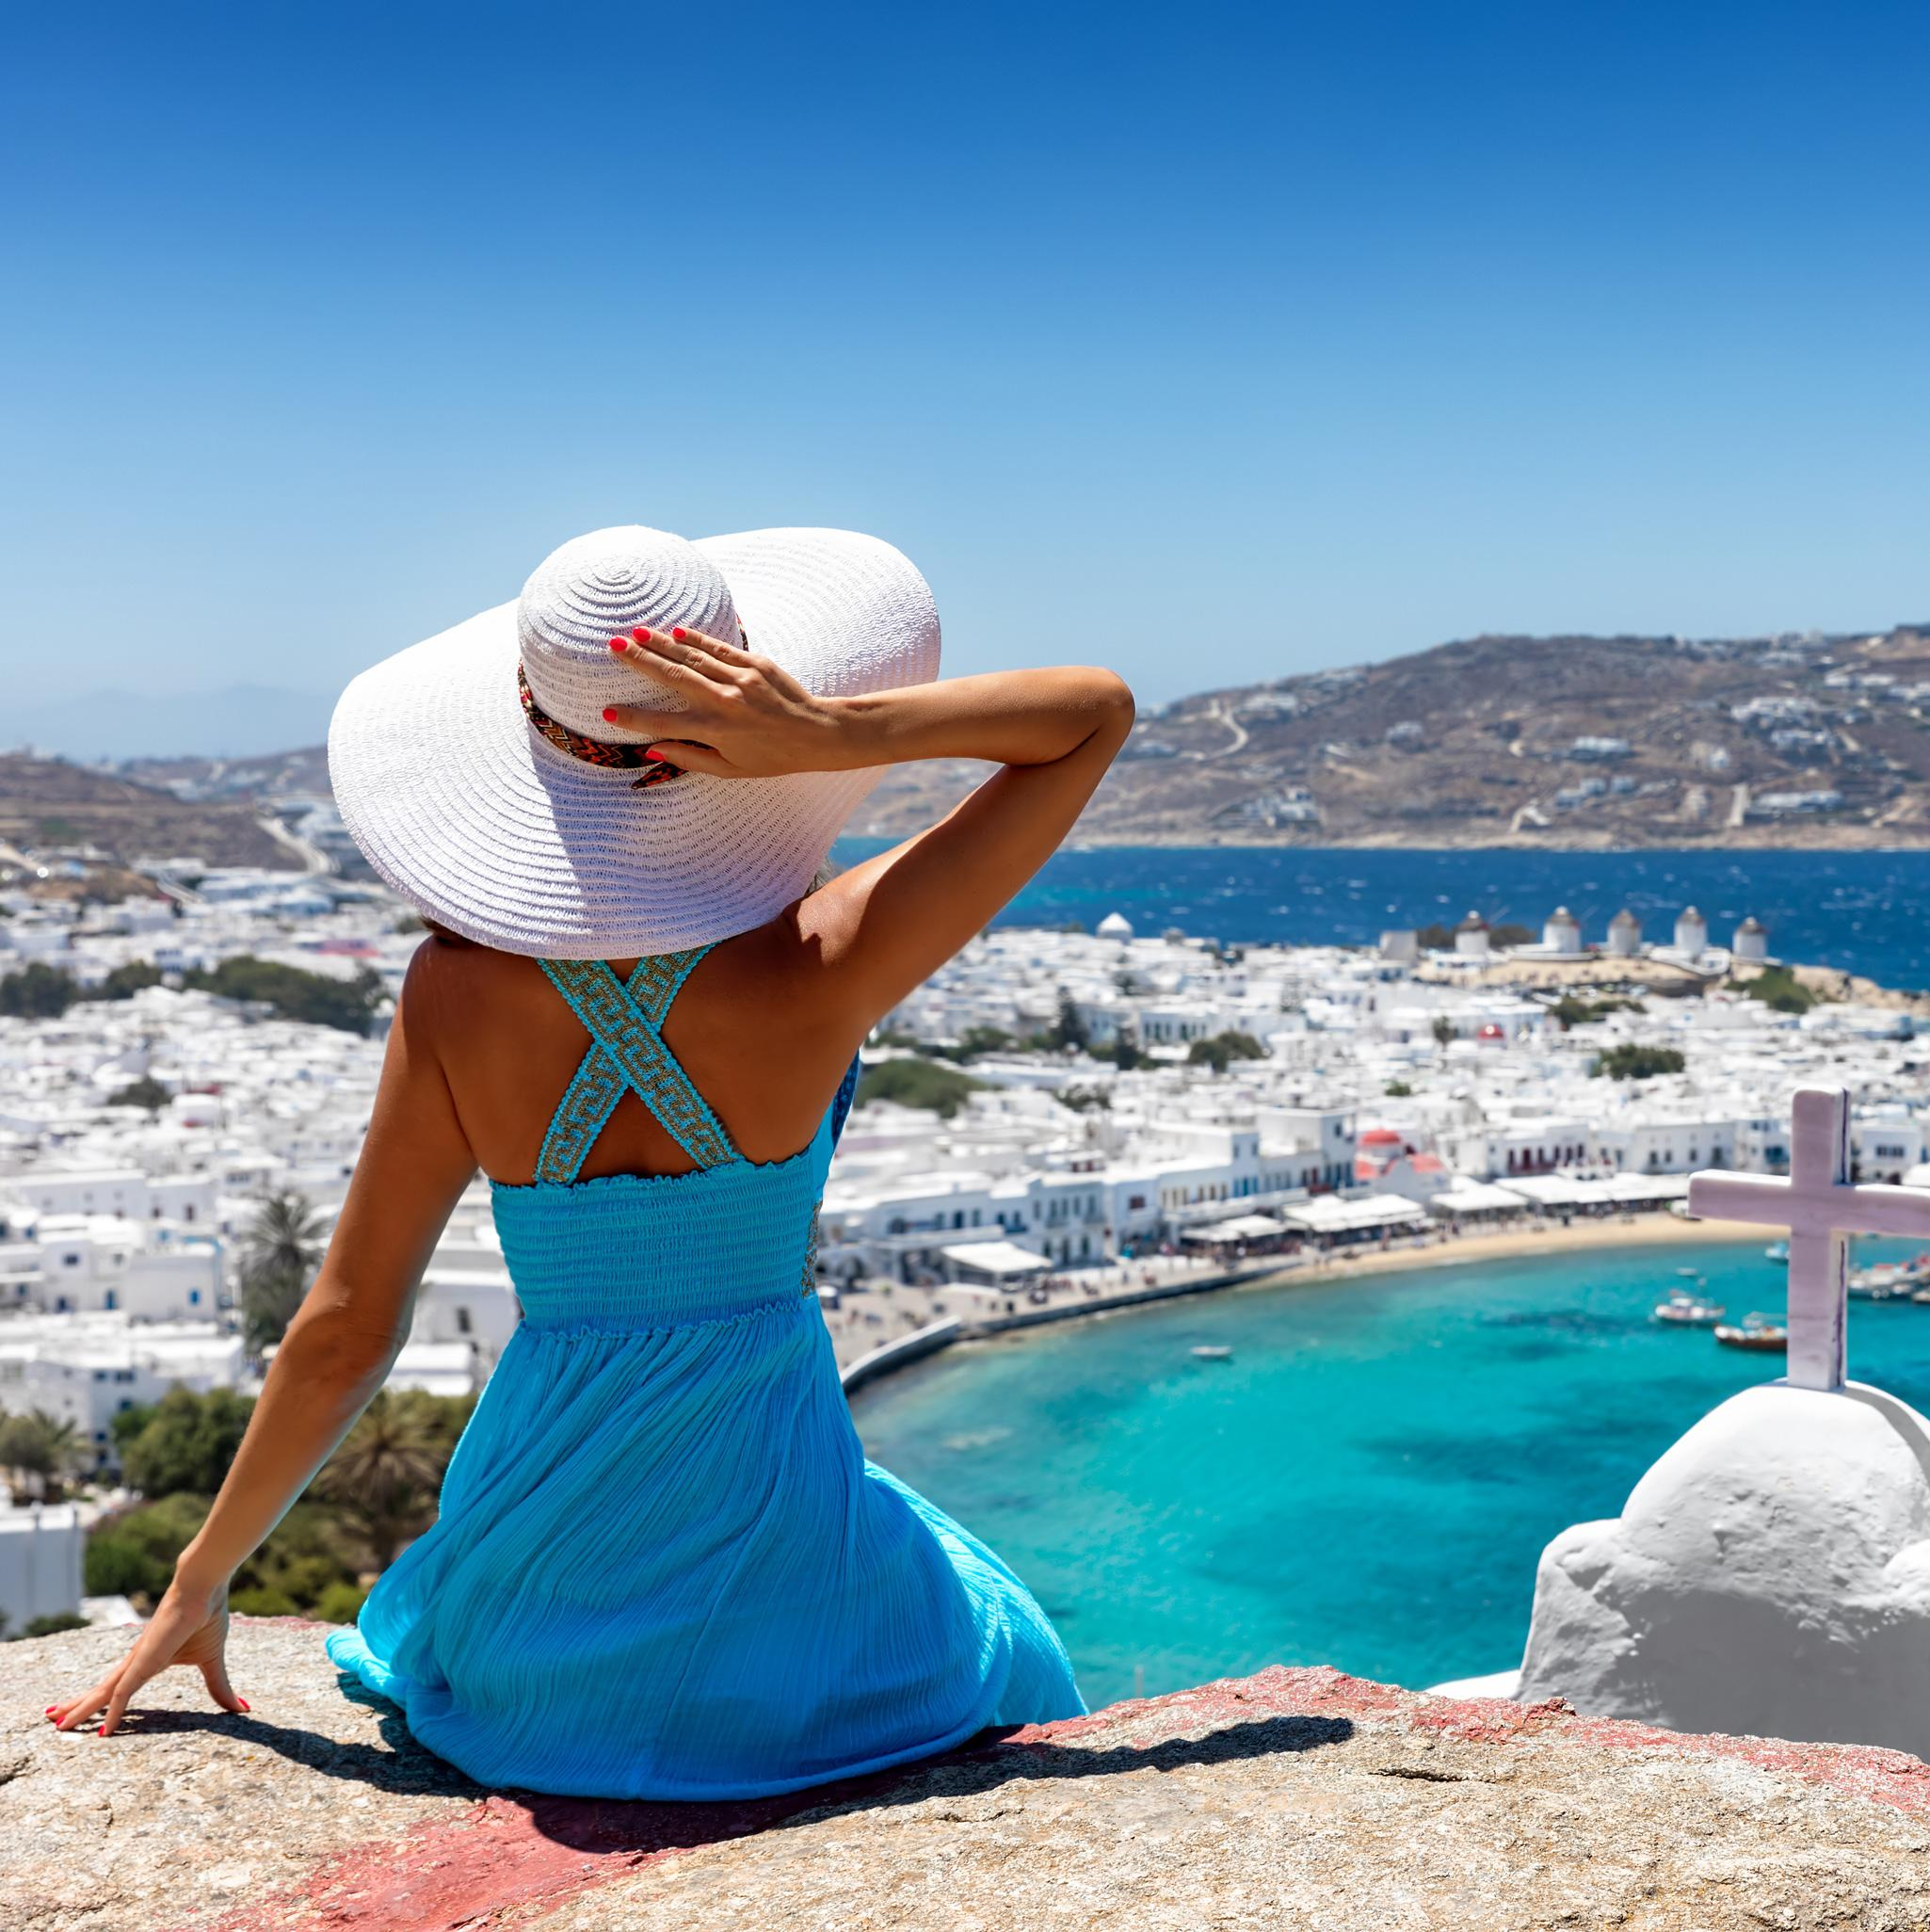 Visit Santorini Greece for an unforgettable experience